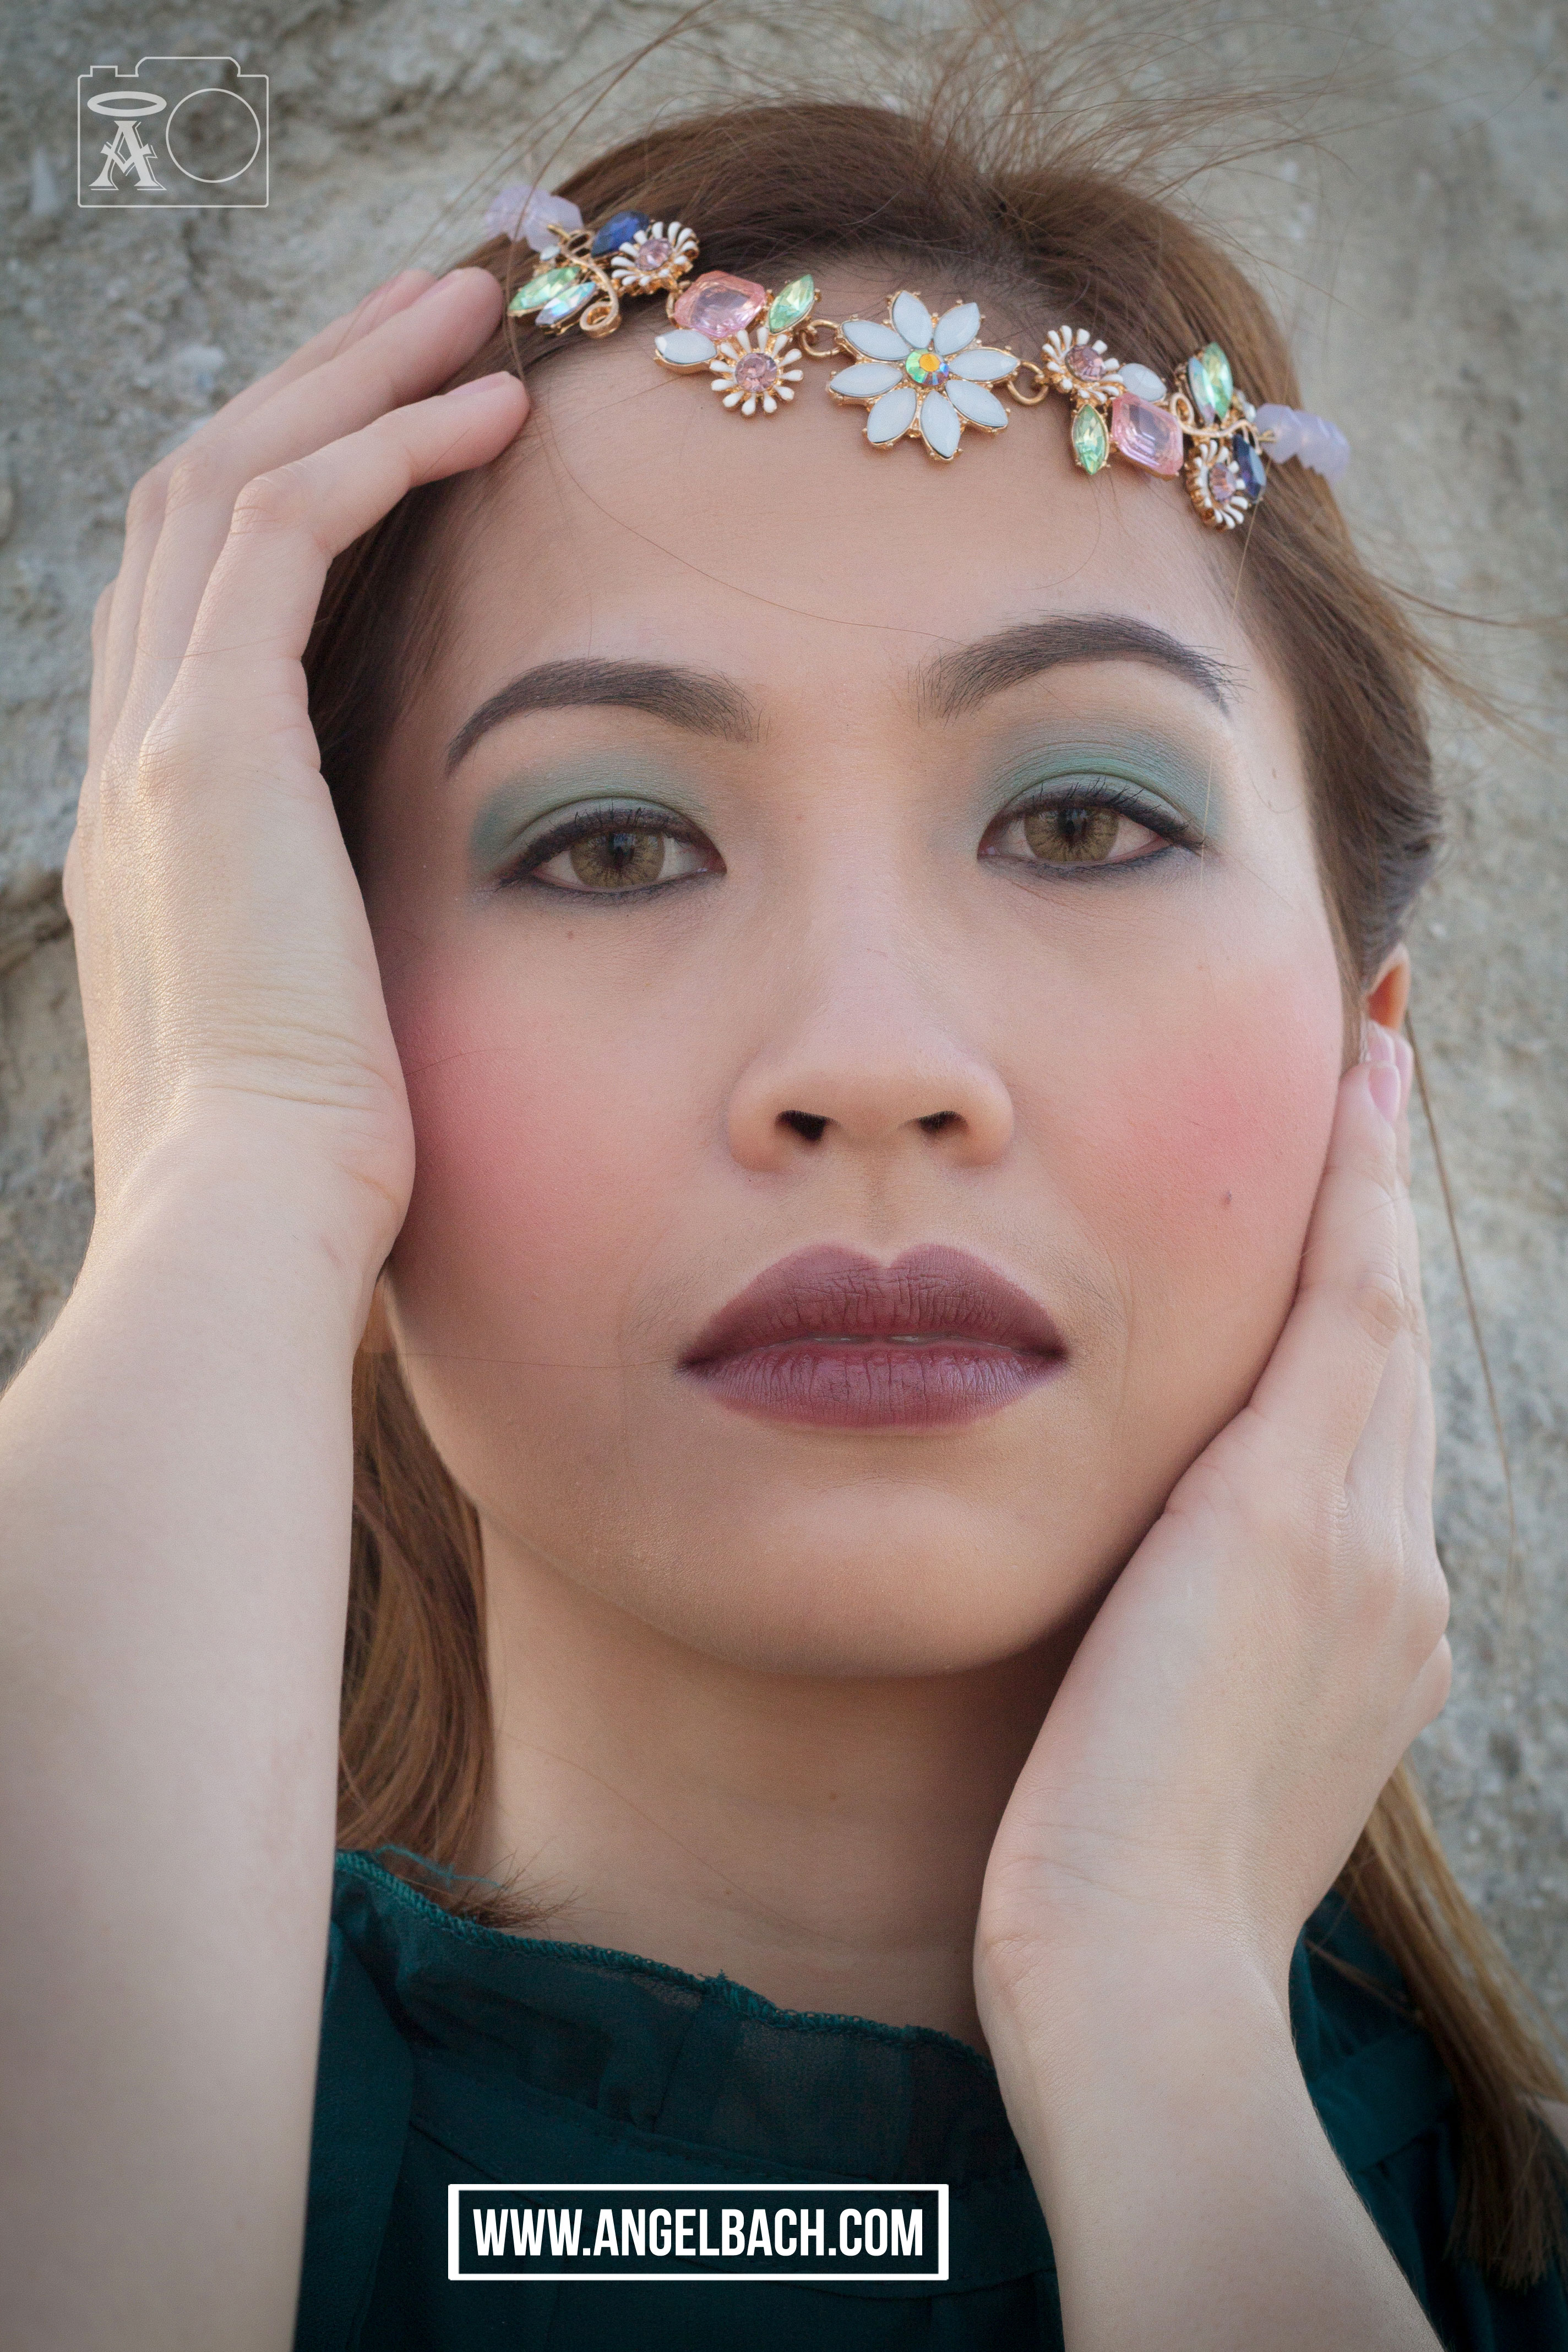 Bohemian Look, 30 Min Make-up Look, Green Eyeshadow, Dark Lipstick, Natural Look, Beach Look